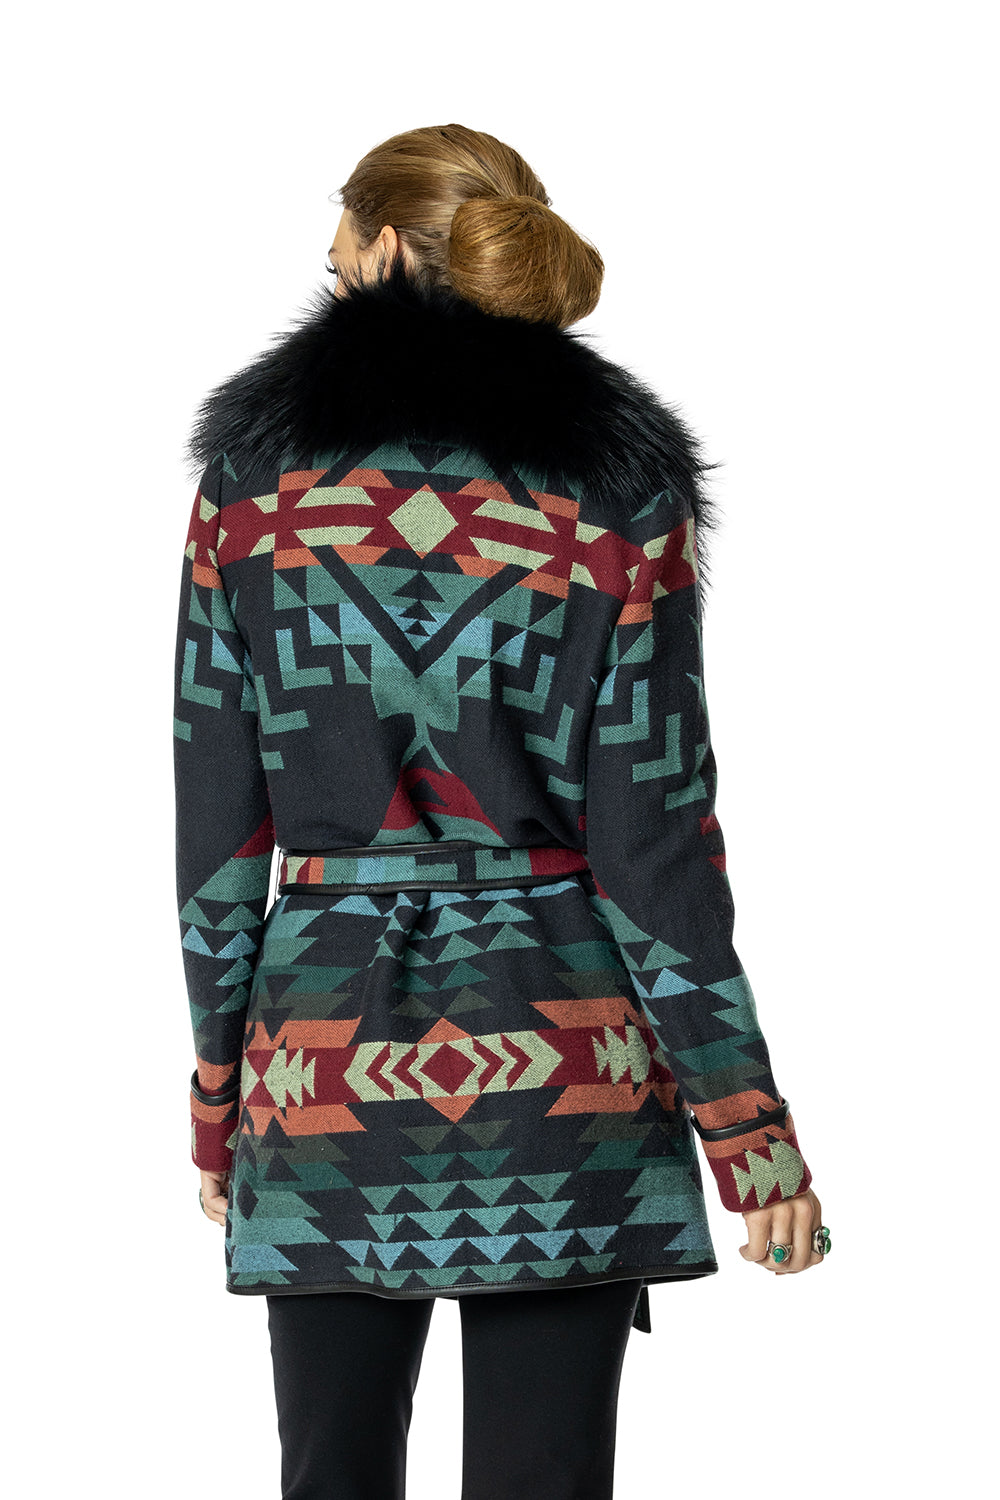 Taos Blanket Jacket